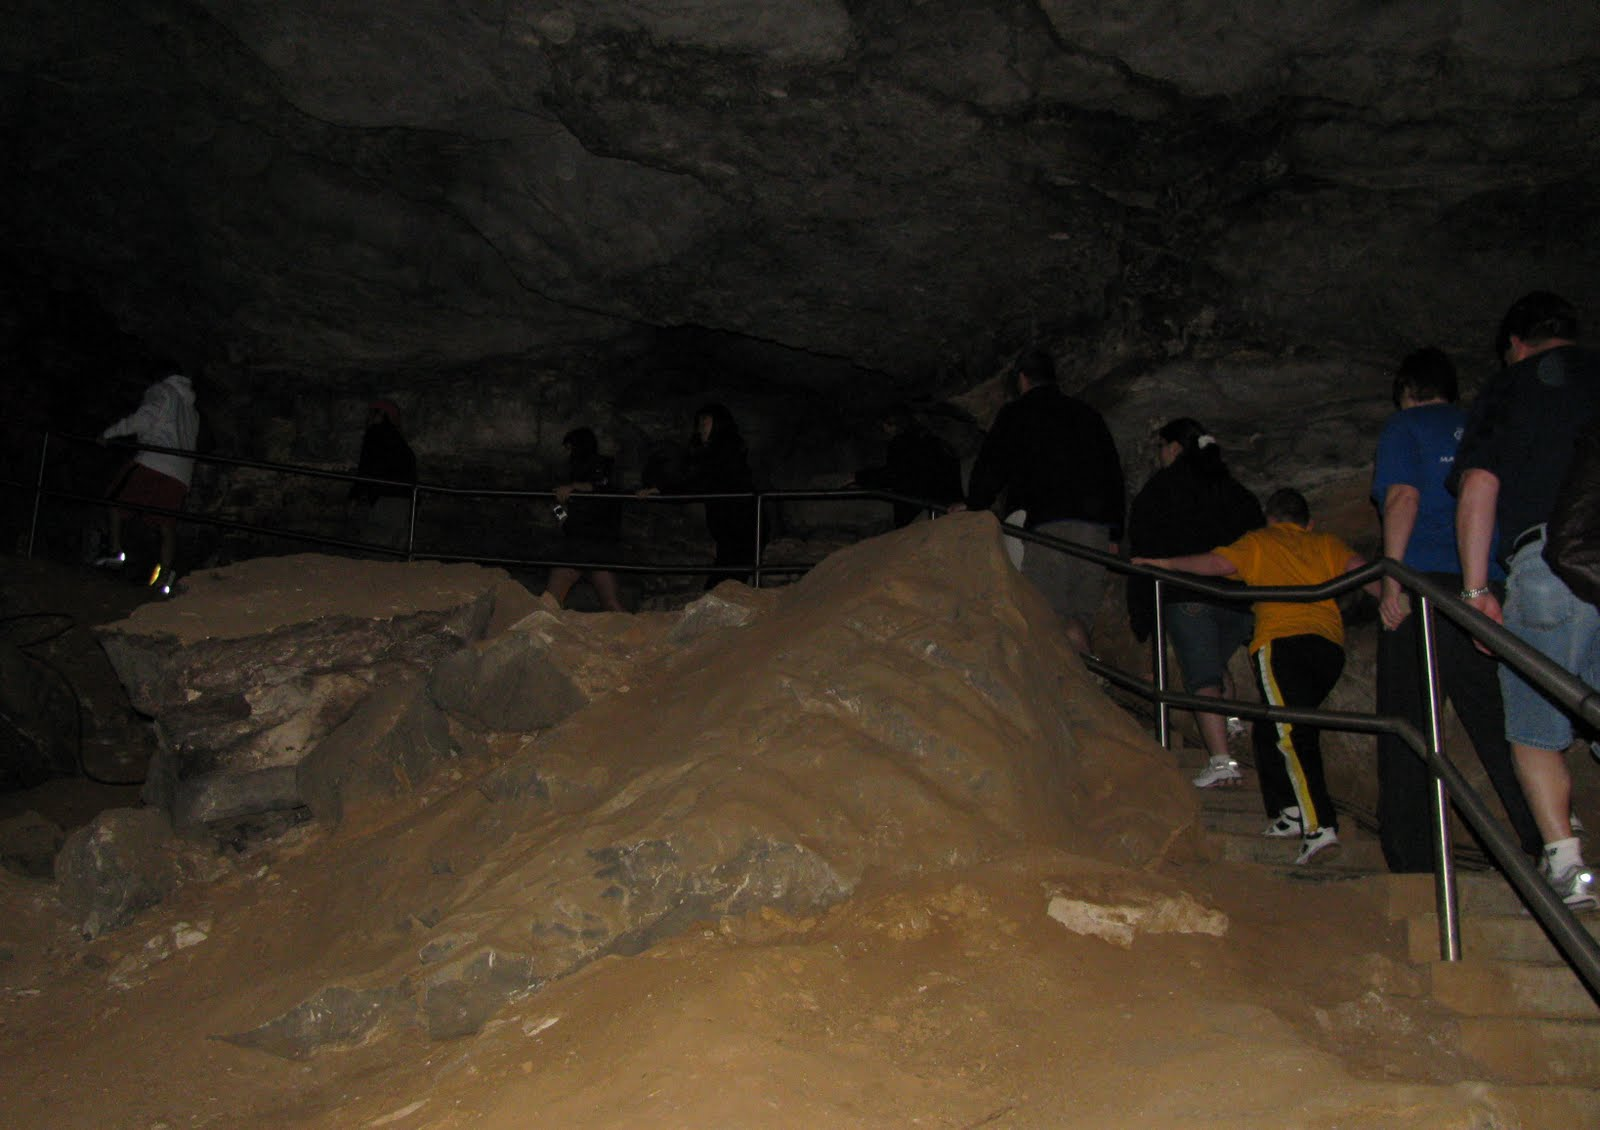 climbing up the steep 138 steps of mammoth dome to get out of the cave was exhausting